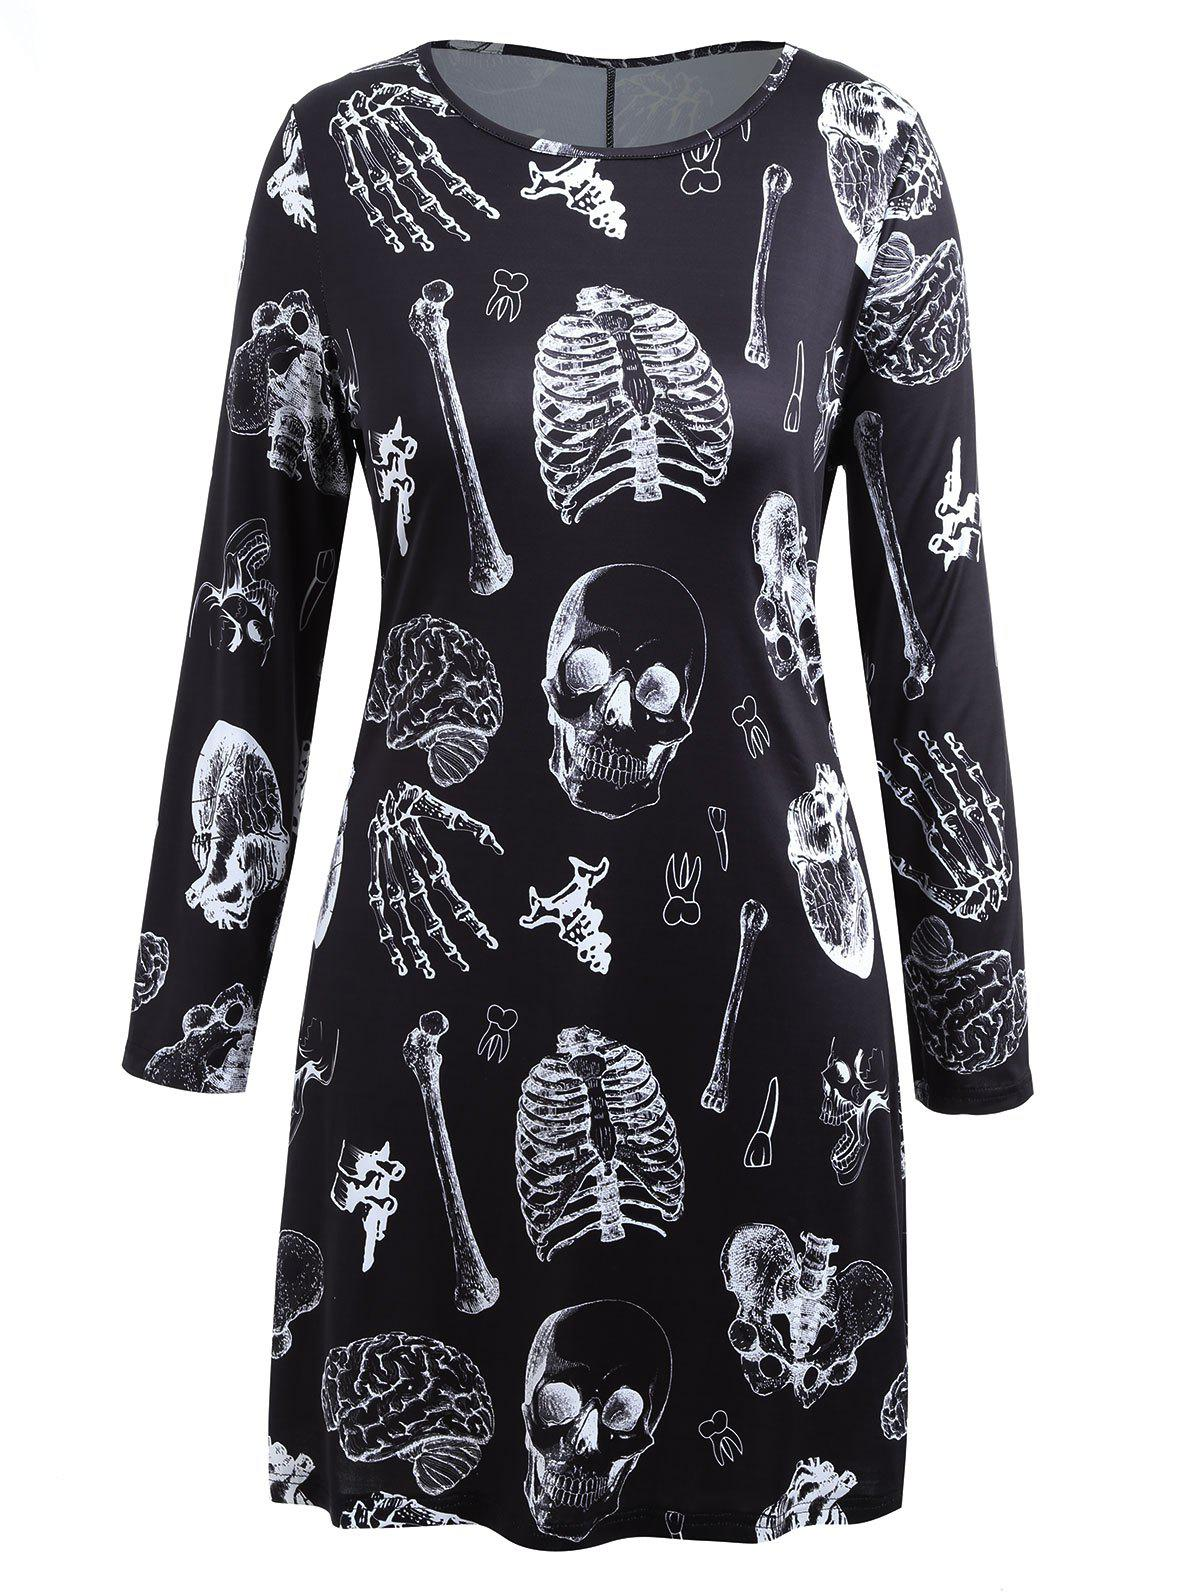 Buy Plus Size Long Sleeve Halloween Skeleton T-shirt Dress